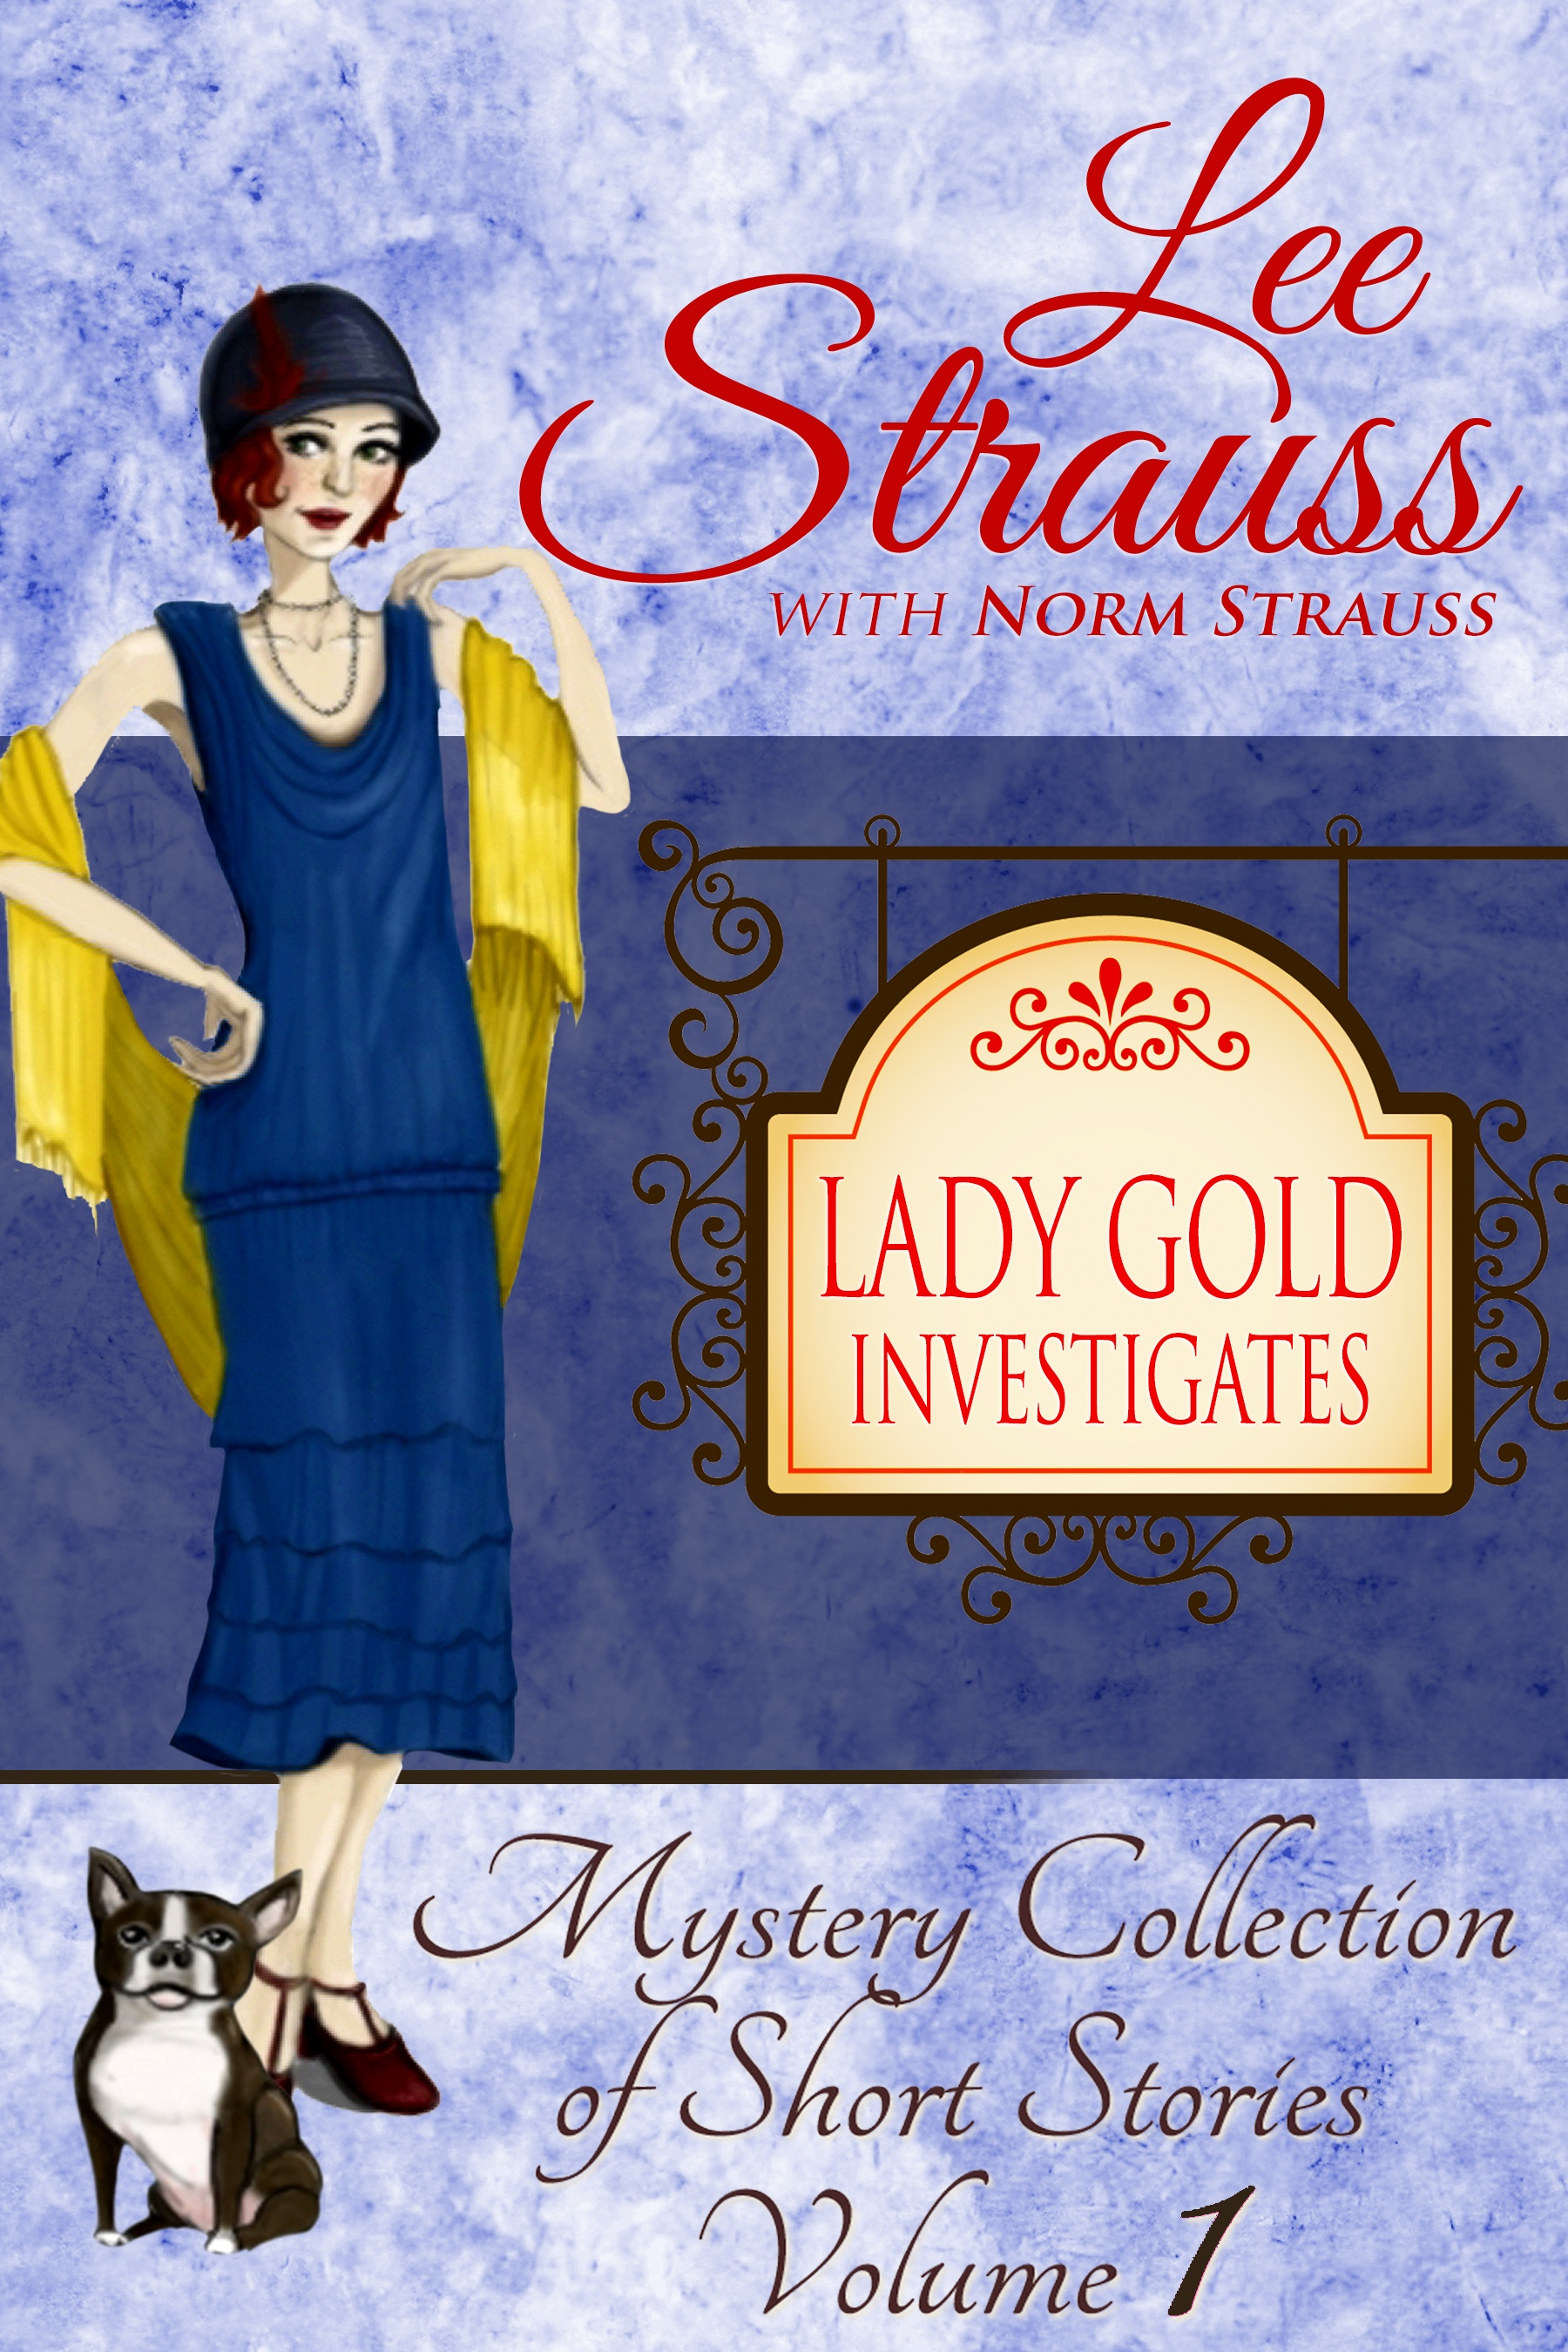 LADY GOLD INVESTIGATES